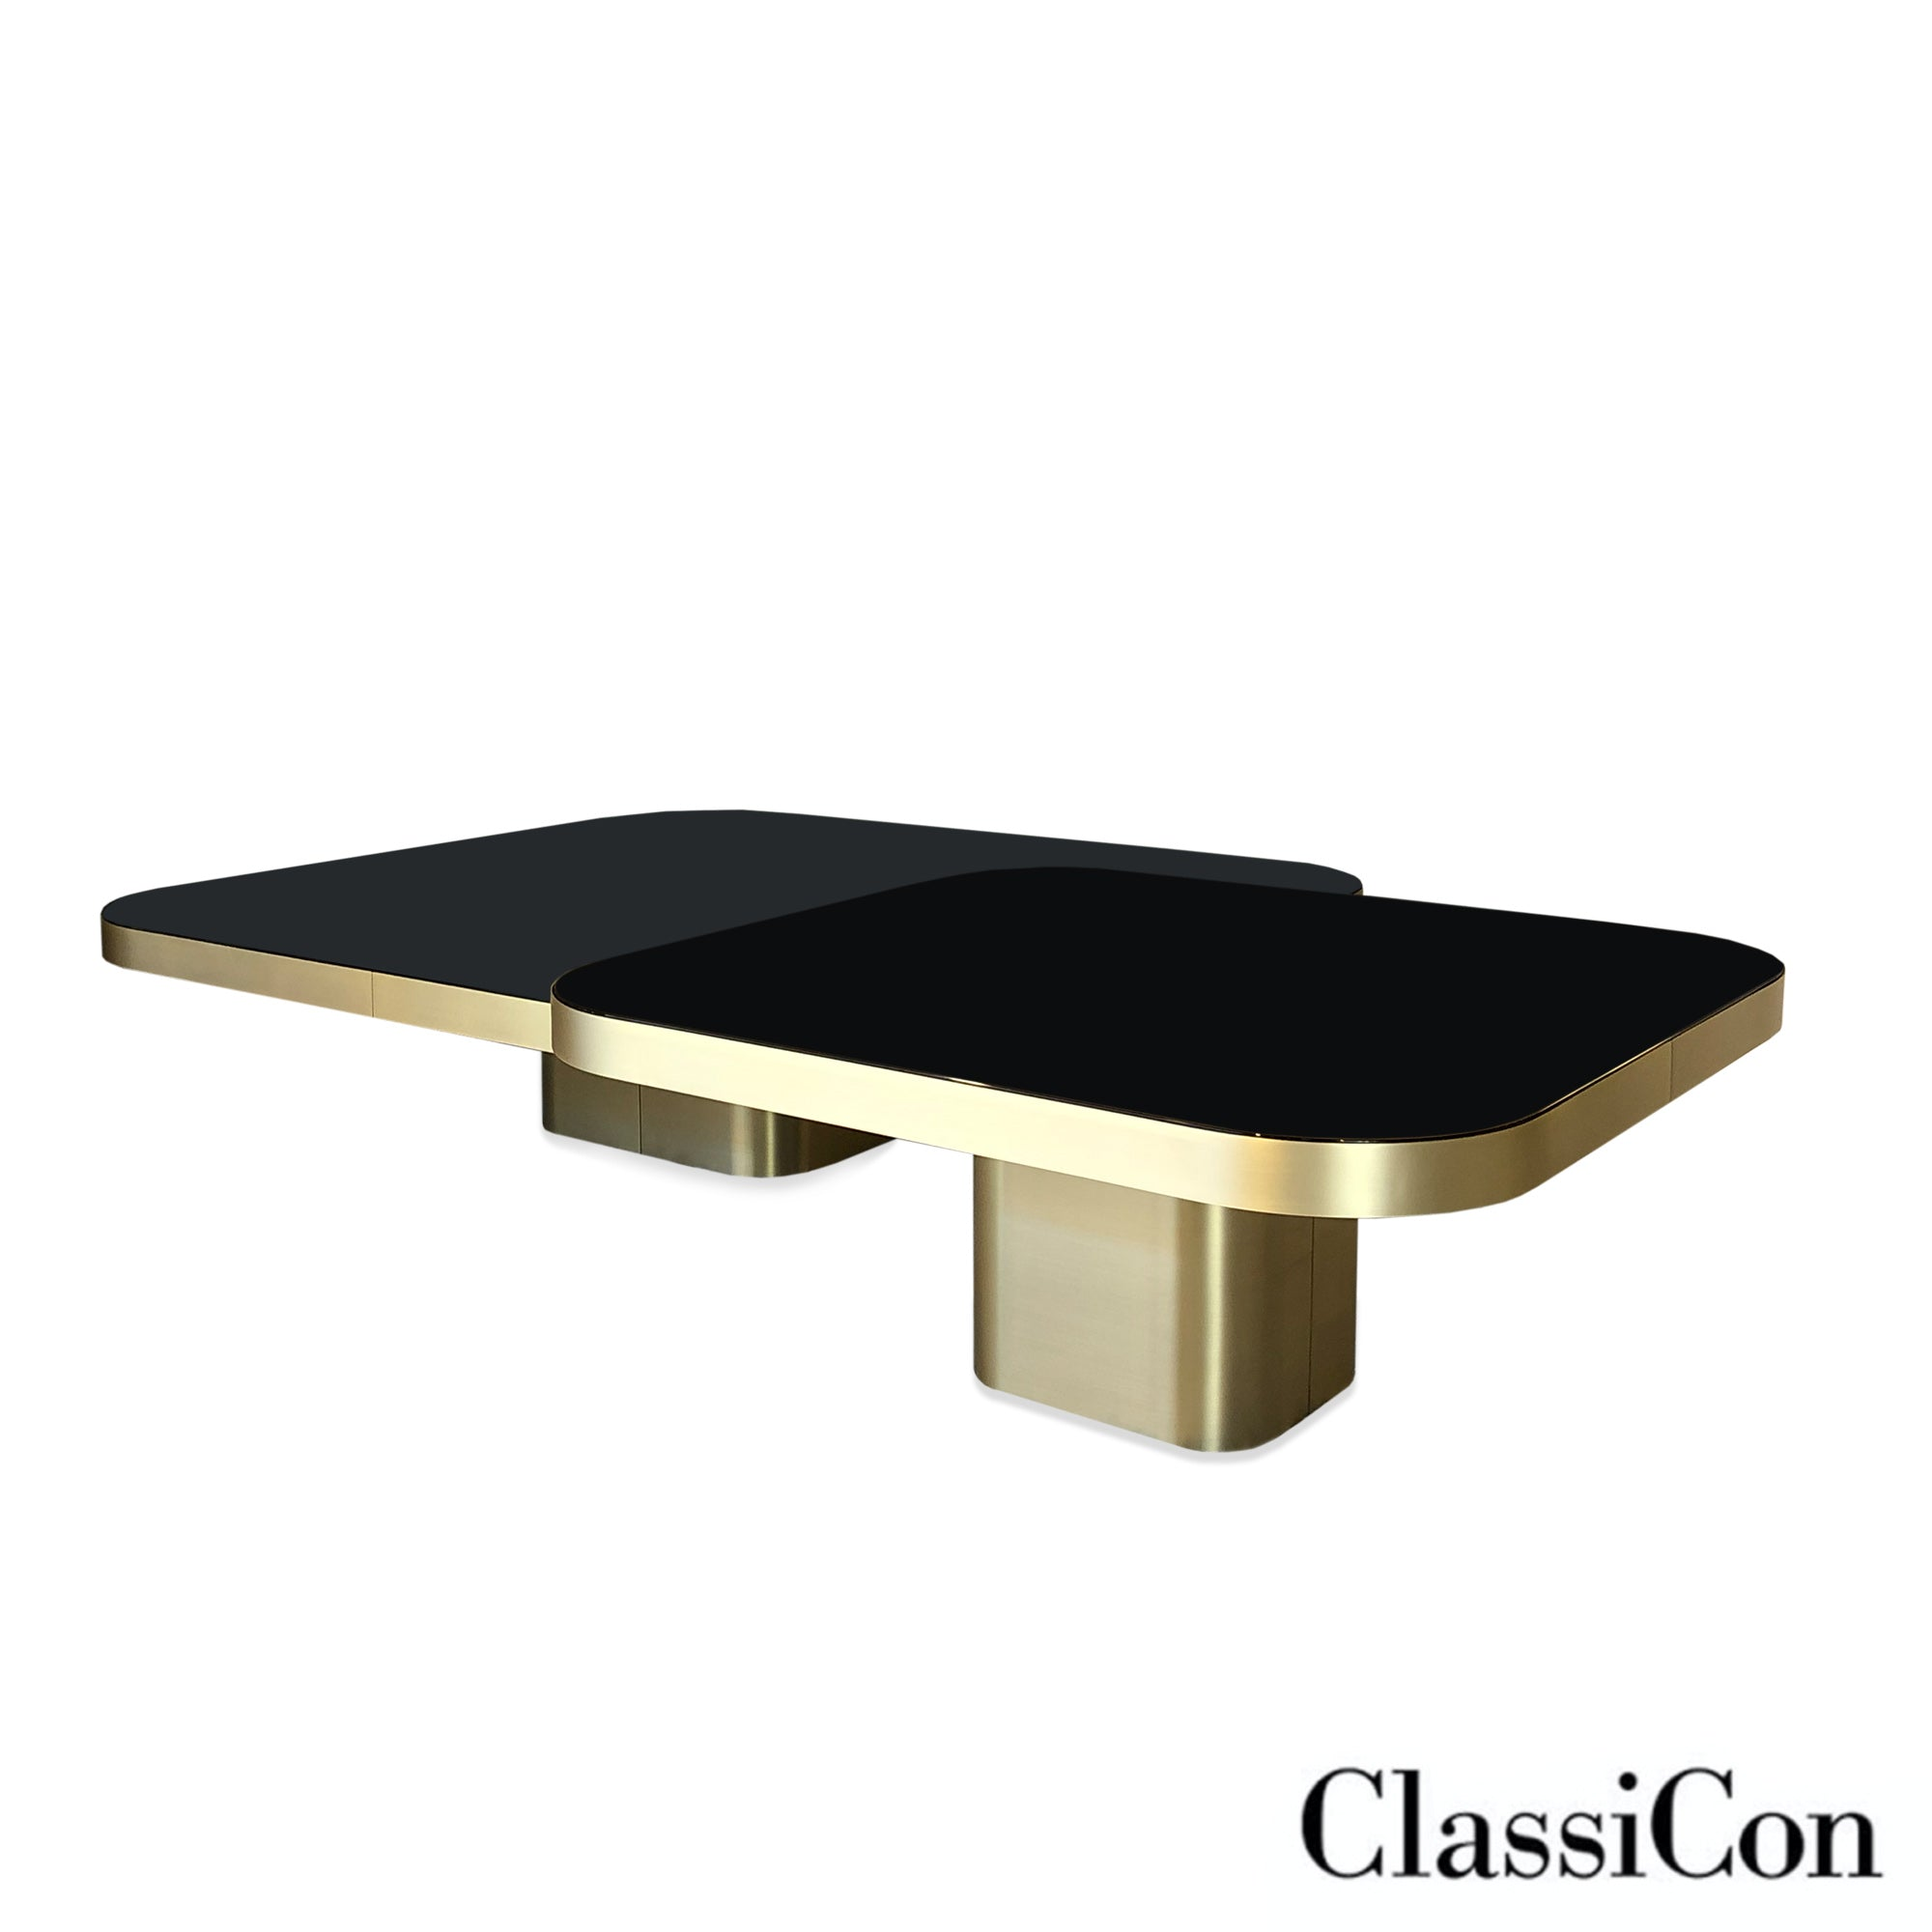 ClassiCon - Bow Coffee Table Couchtisch, 100 x 100 cm